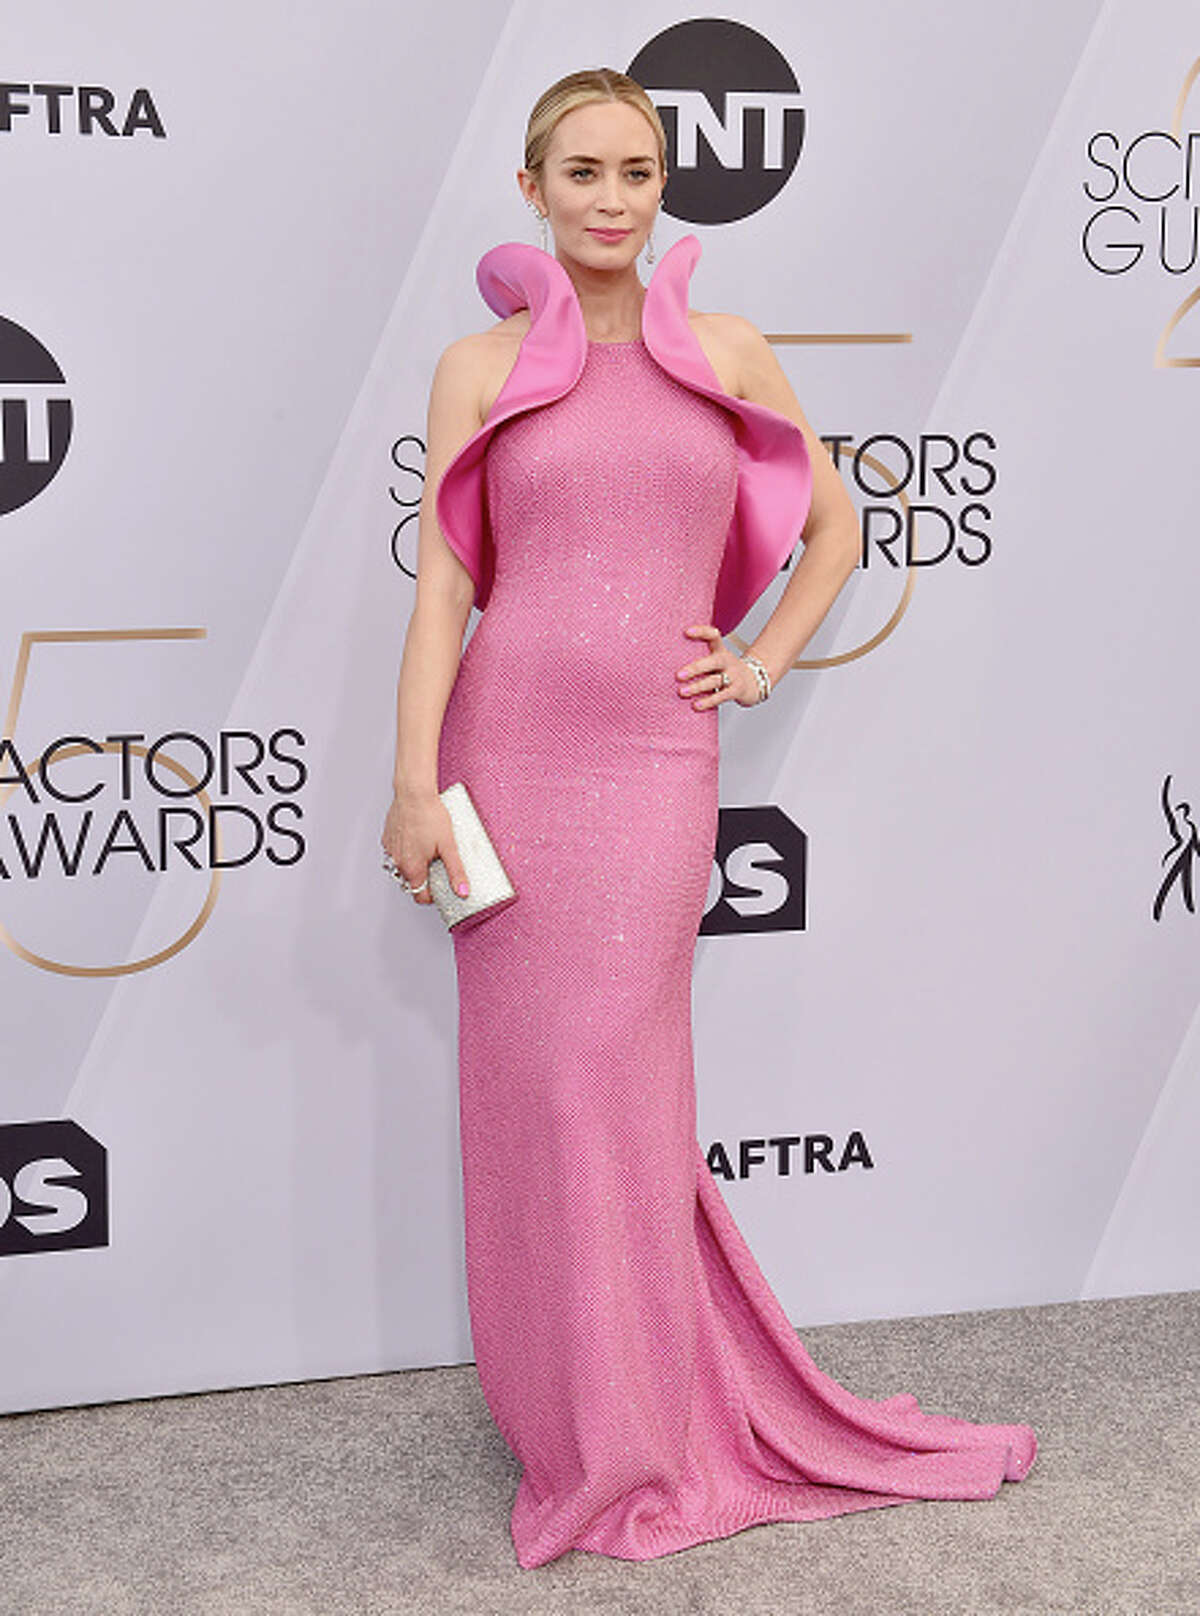 LOS ANGELES, CA - JANUARY 27: Emily Blunt attends the 25th Annual Screen Actors Guild Awards at The Shrine Auditorium on January 27, 2019 in Los Angeles, California. (Photo by Axelle/Bauer-Griffin/FilmMagic)